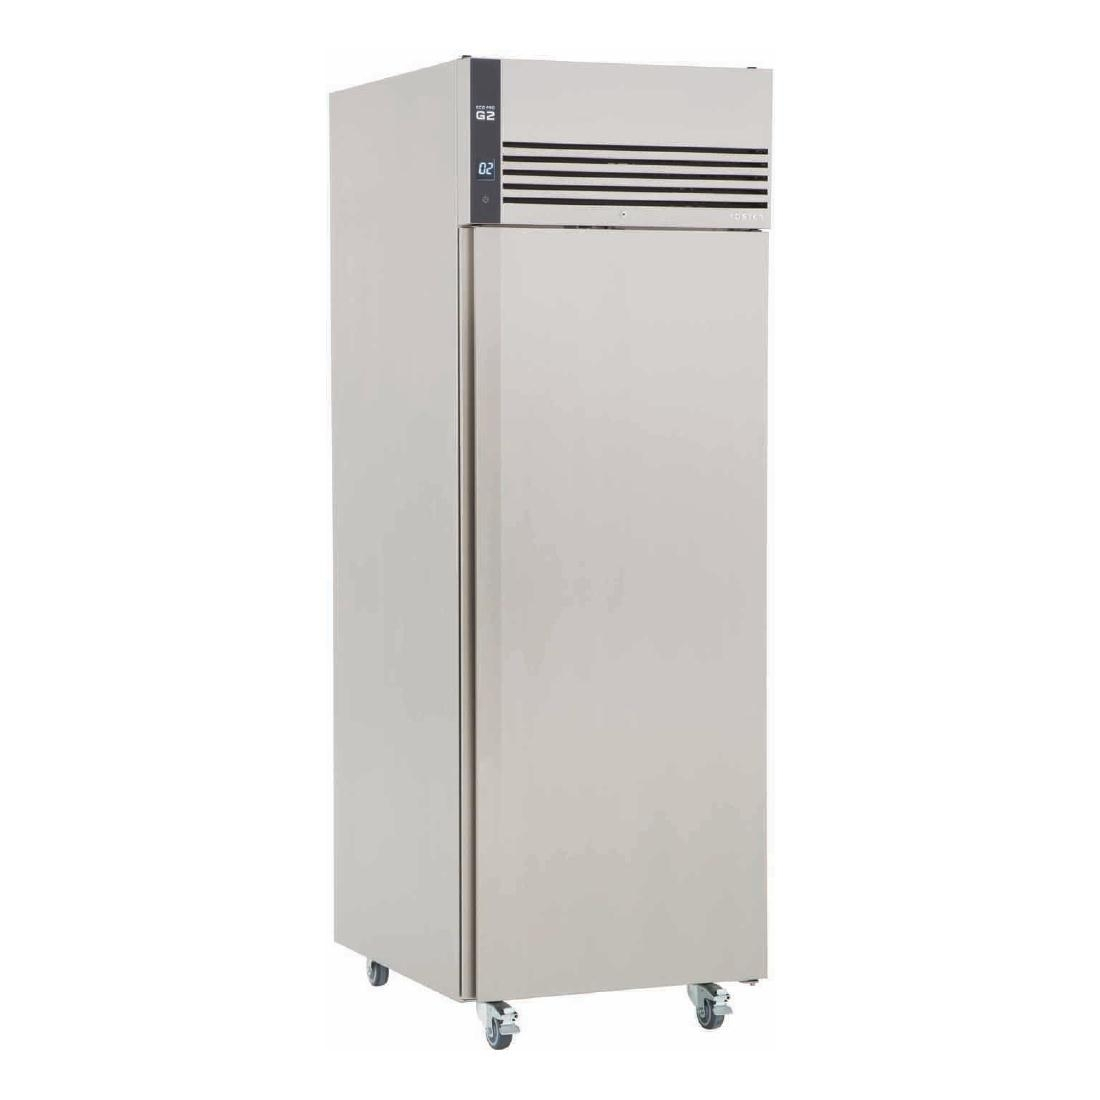 Foster EcoPro G2 1 Door 600Ltr Cabinet Fridge with Back EP700H 10/114